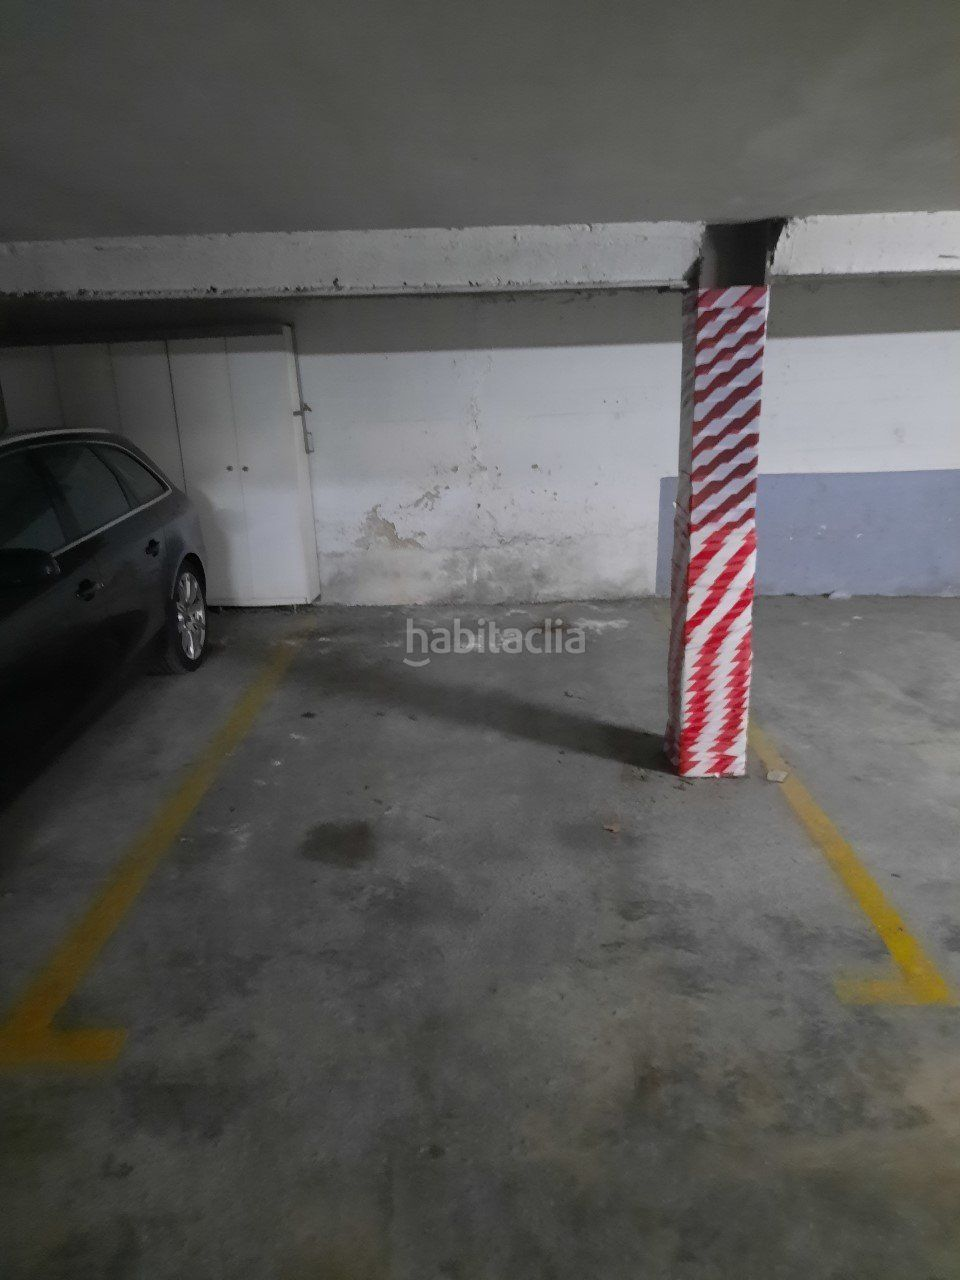 Rent Car parking in Carrer sant jordi, 18. Venta de parking en barrio les clotes